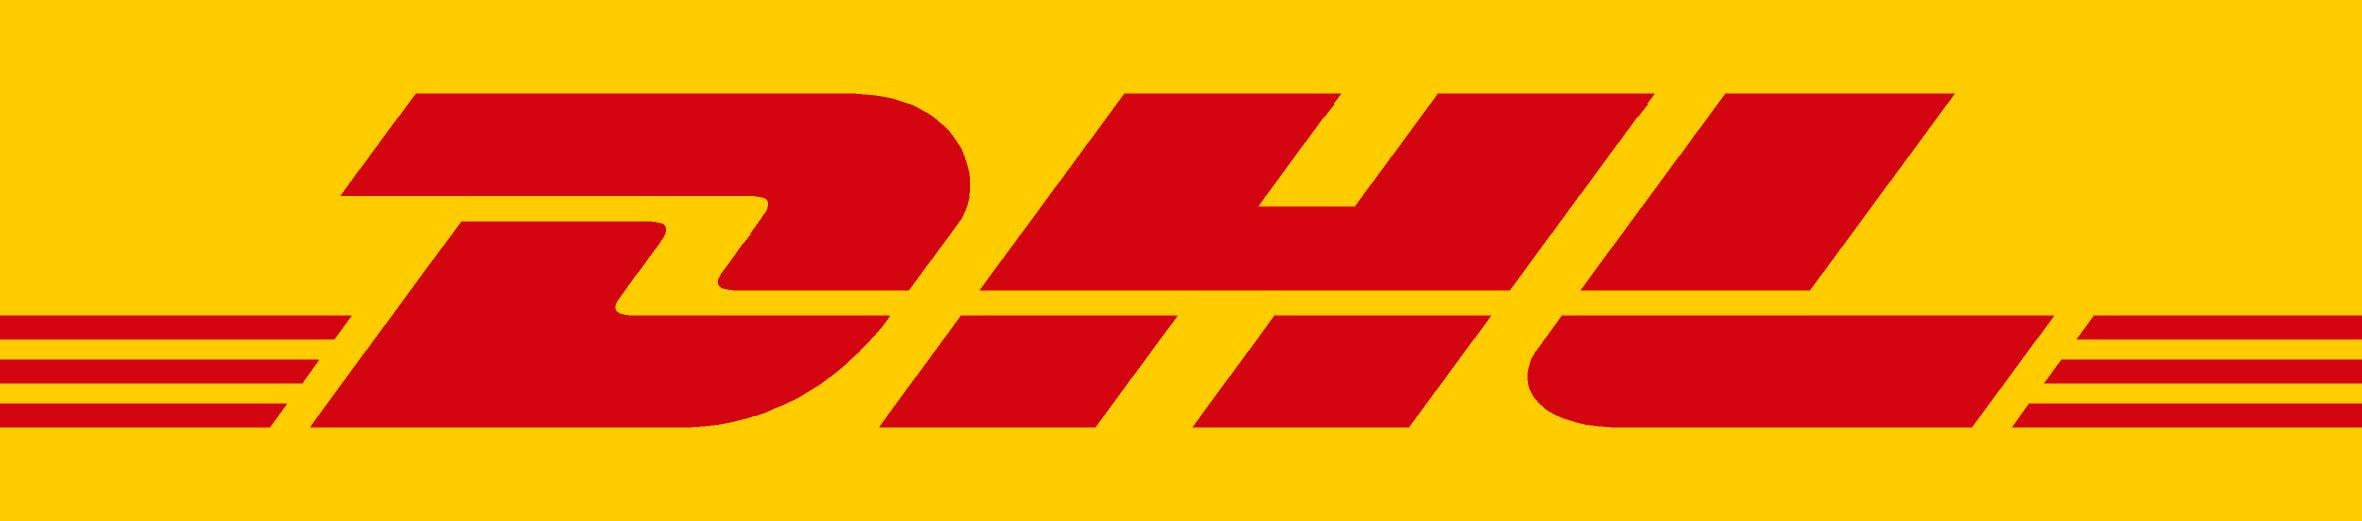 Is DHL the Worst Int'l Shipping Service? I Think So | The